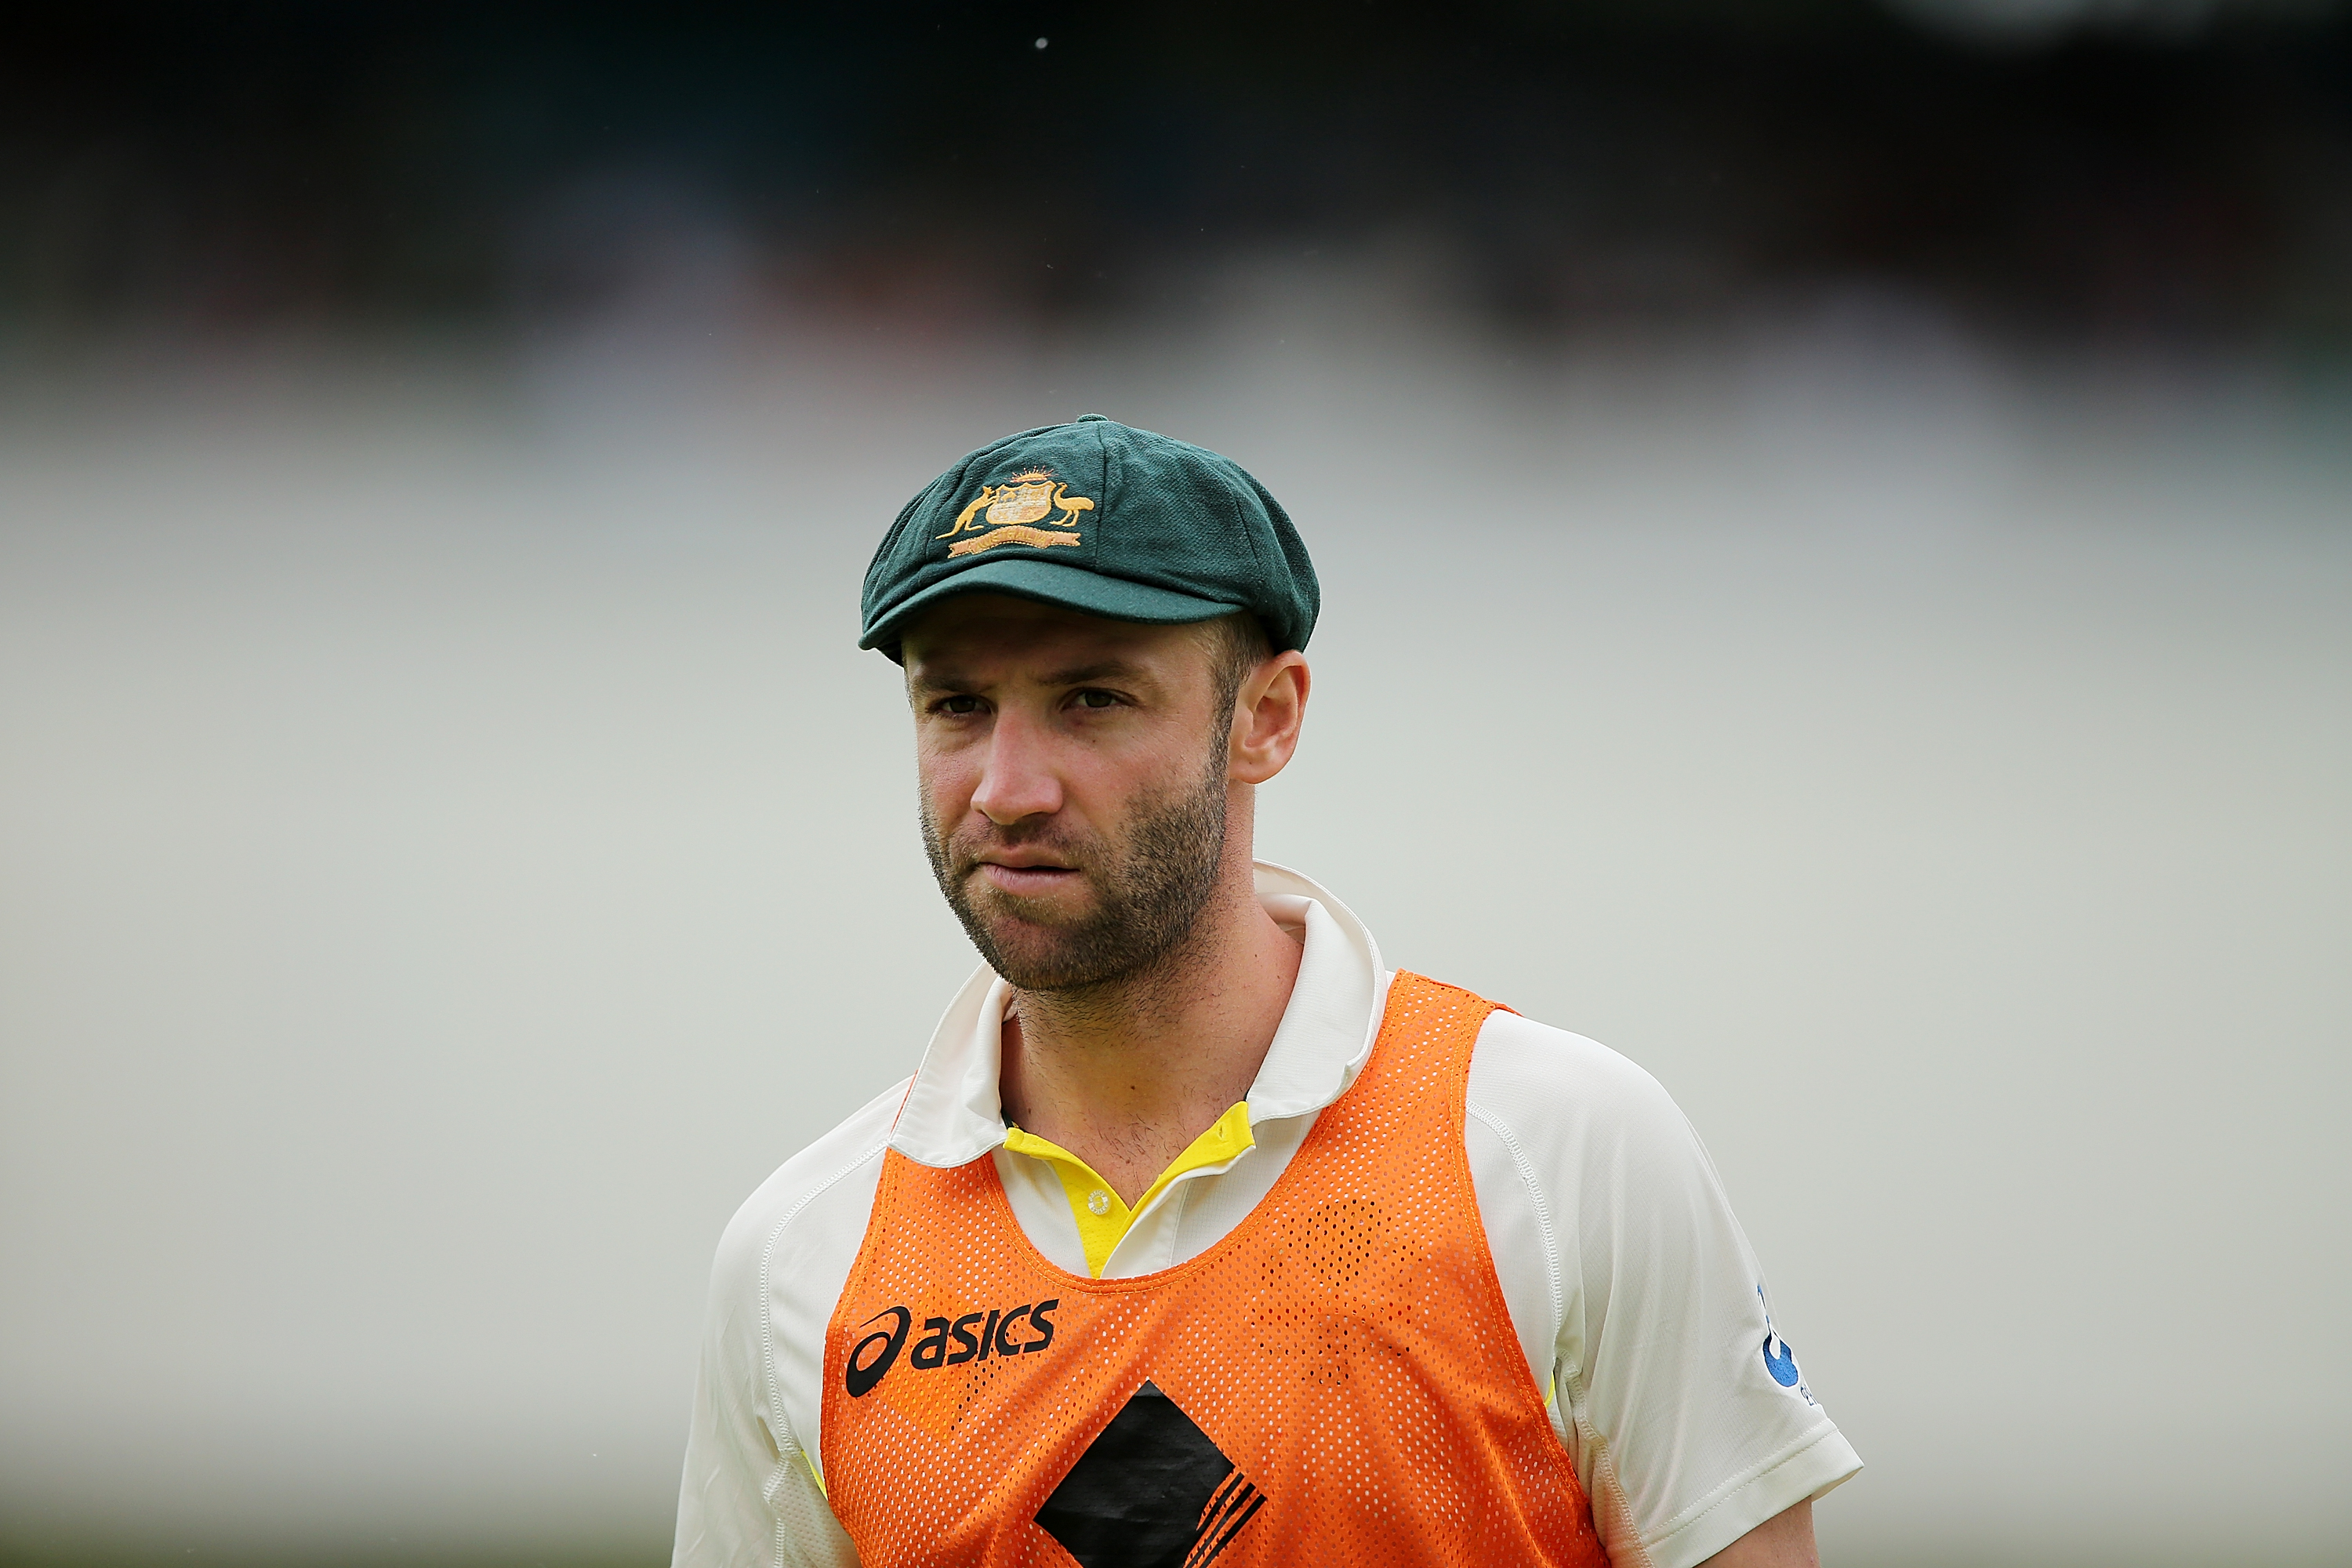 3000x2000 - Phillip Hughes Wallpapers 33